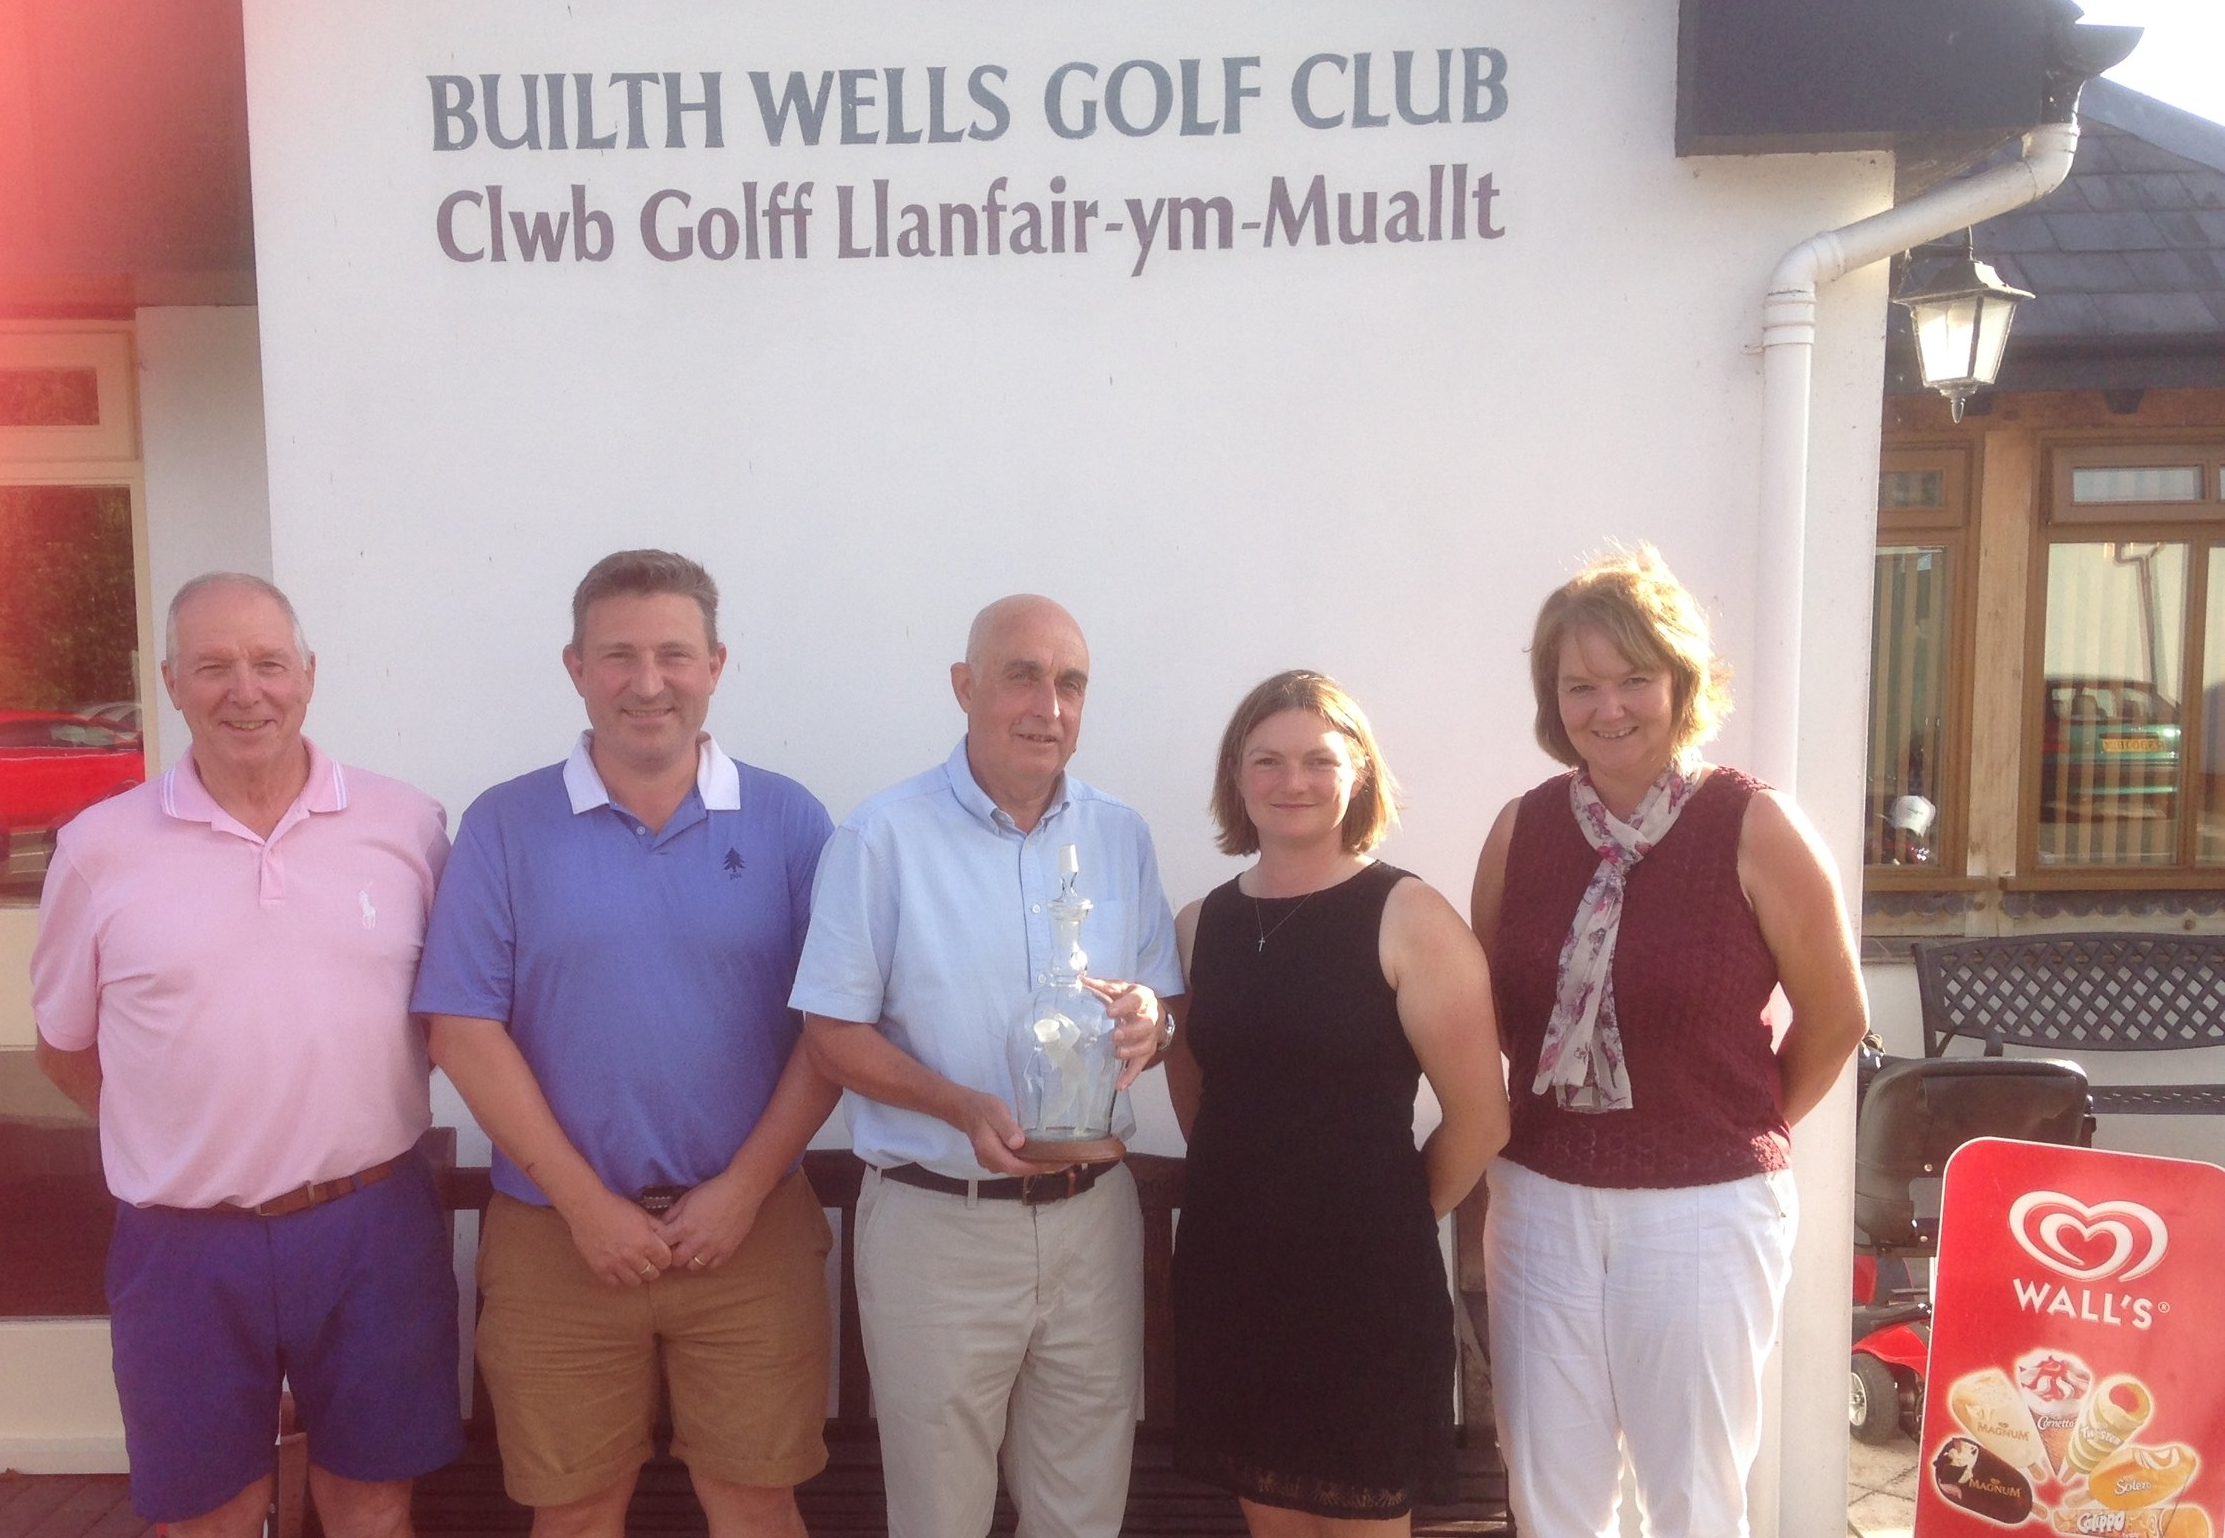 From left: Roger Gant, Chris Offa (Club Captain), Don Harris, Sherrie Edwards (Lady Captain), Hayley Price